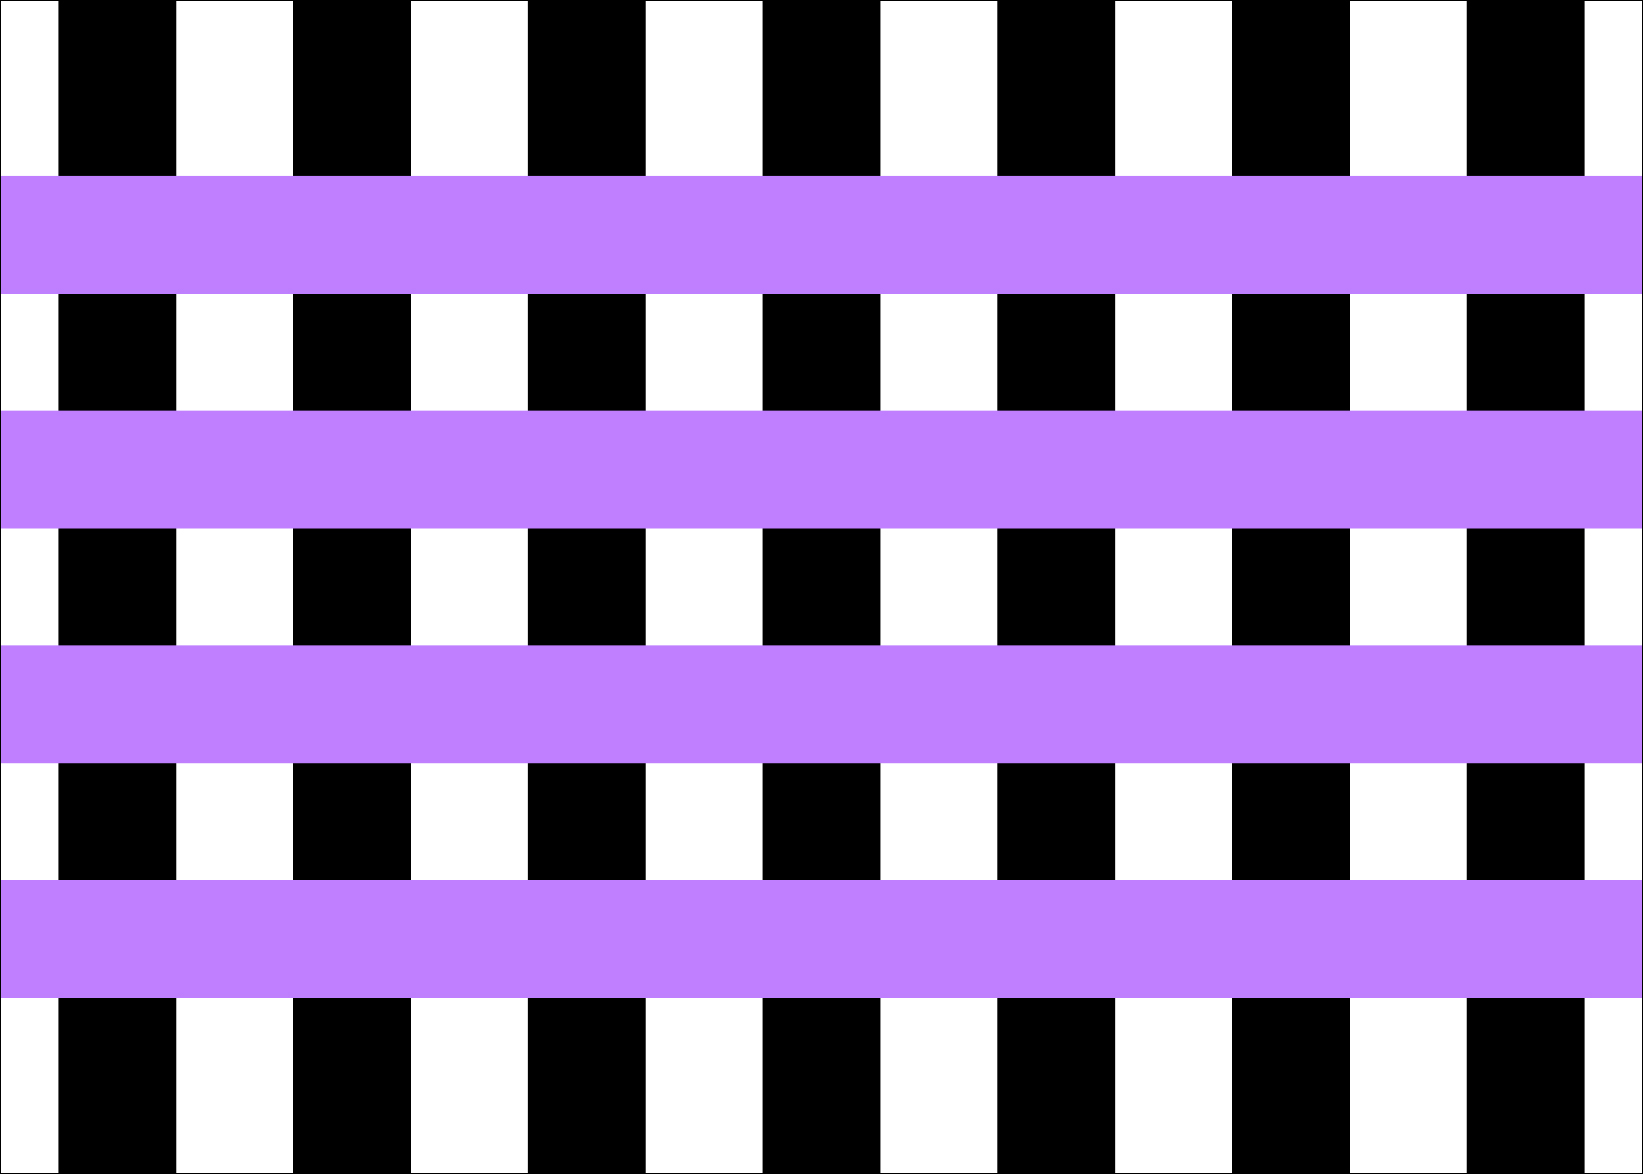 Straight purple lines in Adobe Illustrator